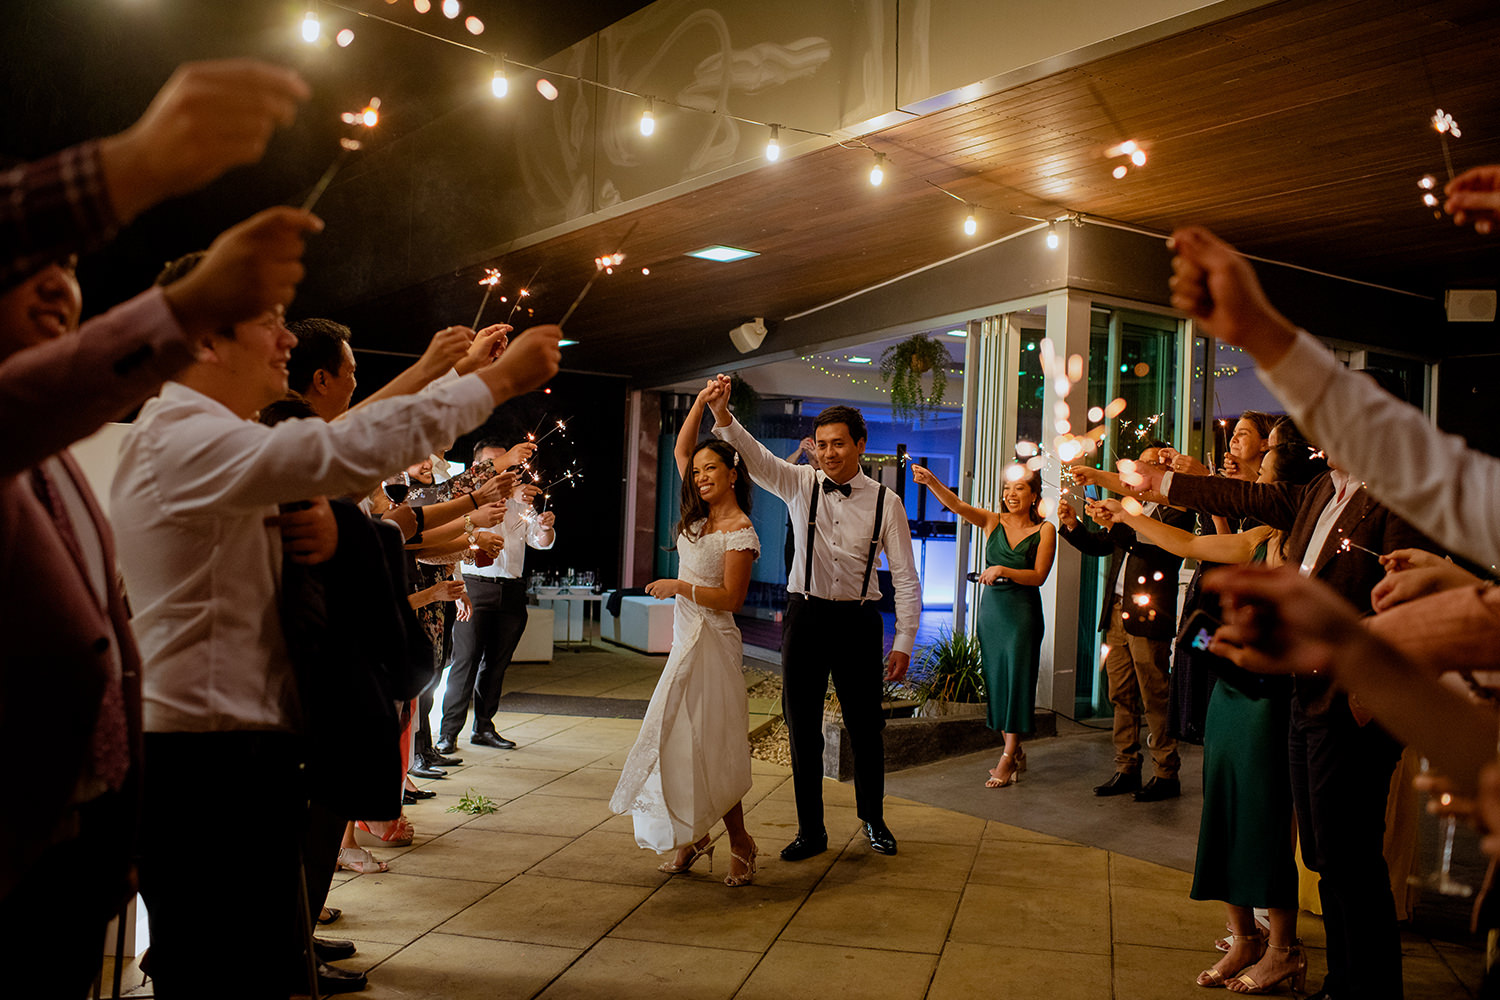 Groom dancing with his bride surrounded by guests with sparklers